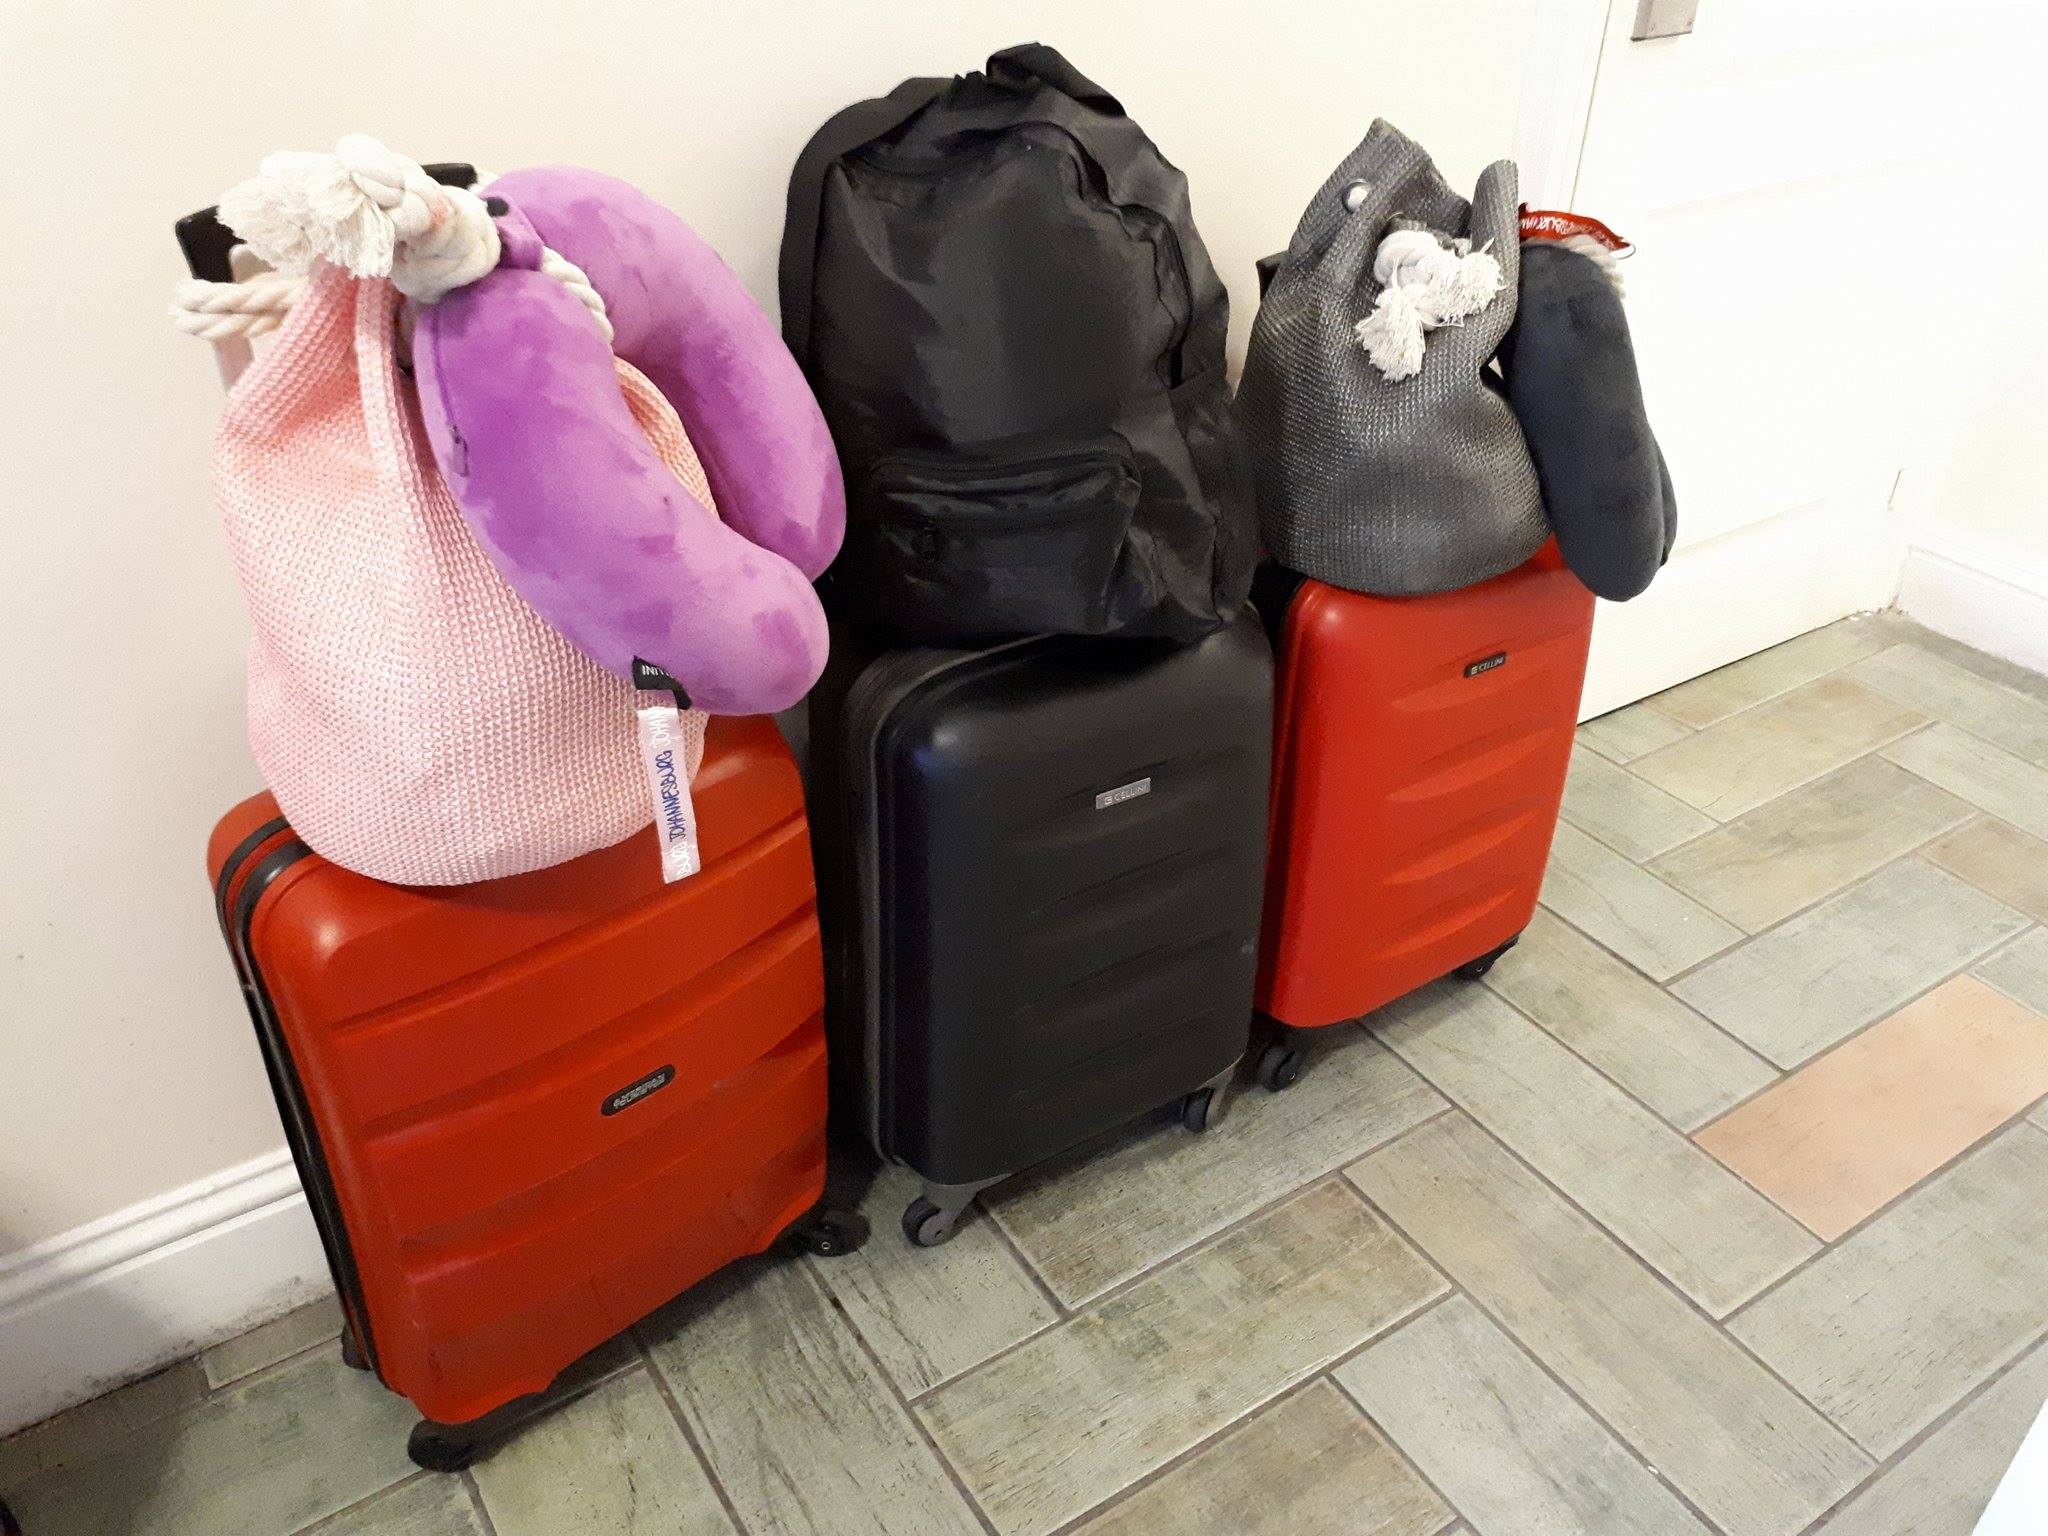 Lynda persuaded her travel companions to also travel light.